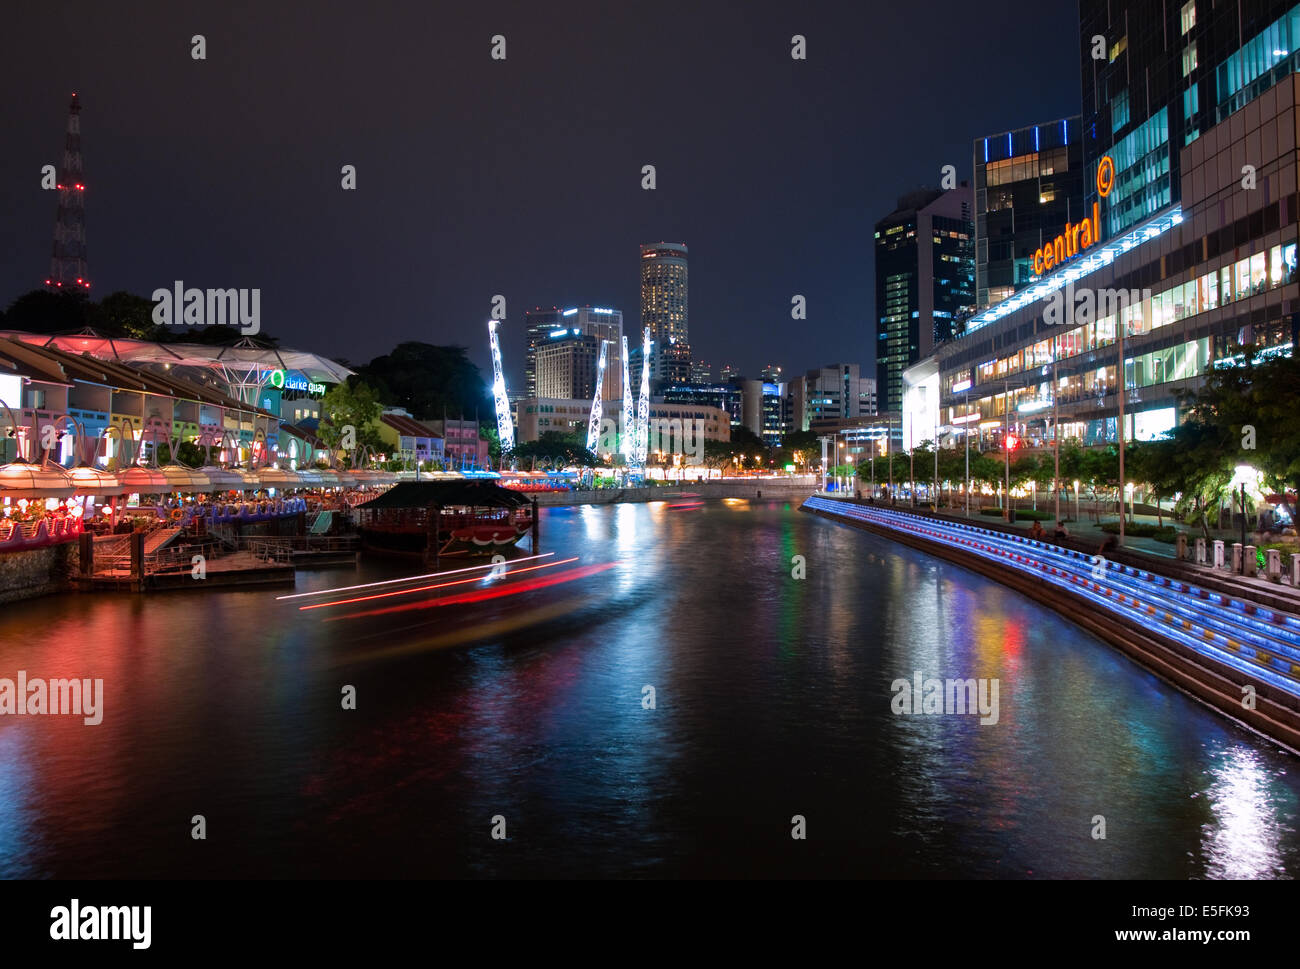 Electric Clarke Quay and the Singapore River at night.  Singapore. - Stock Image